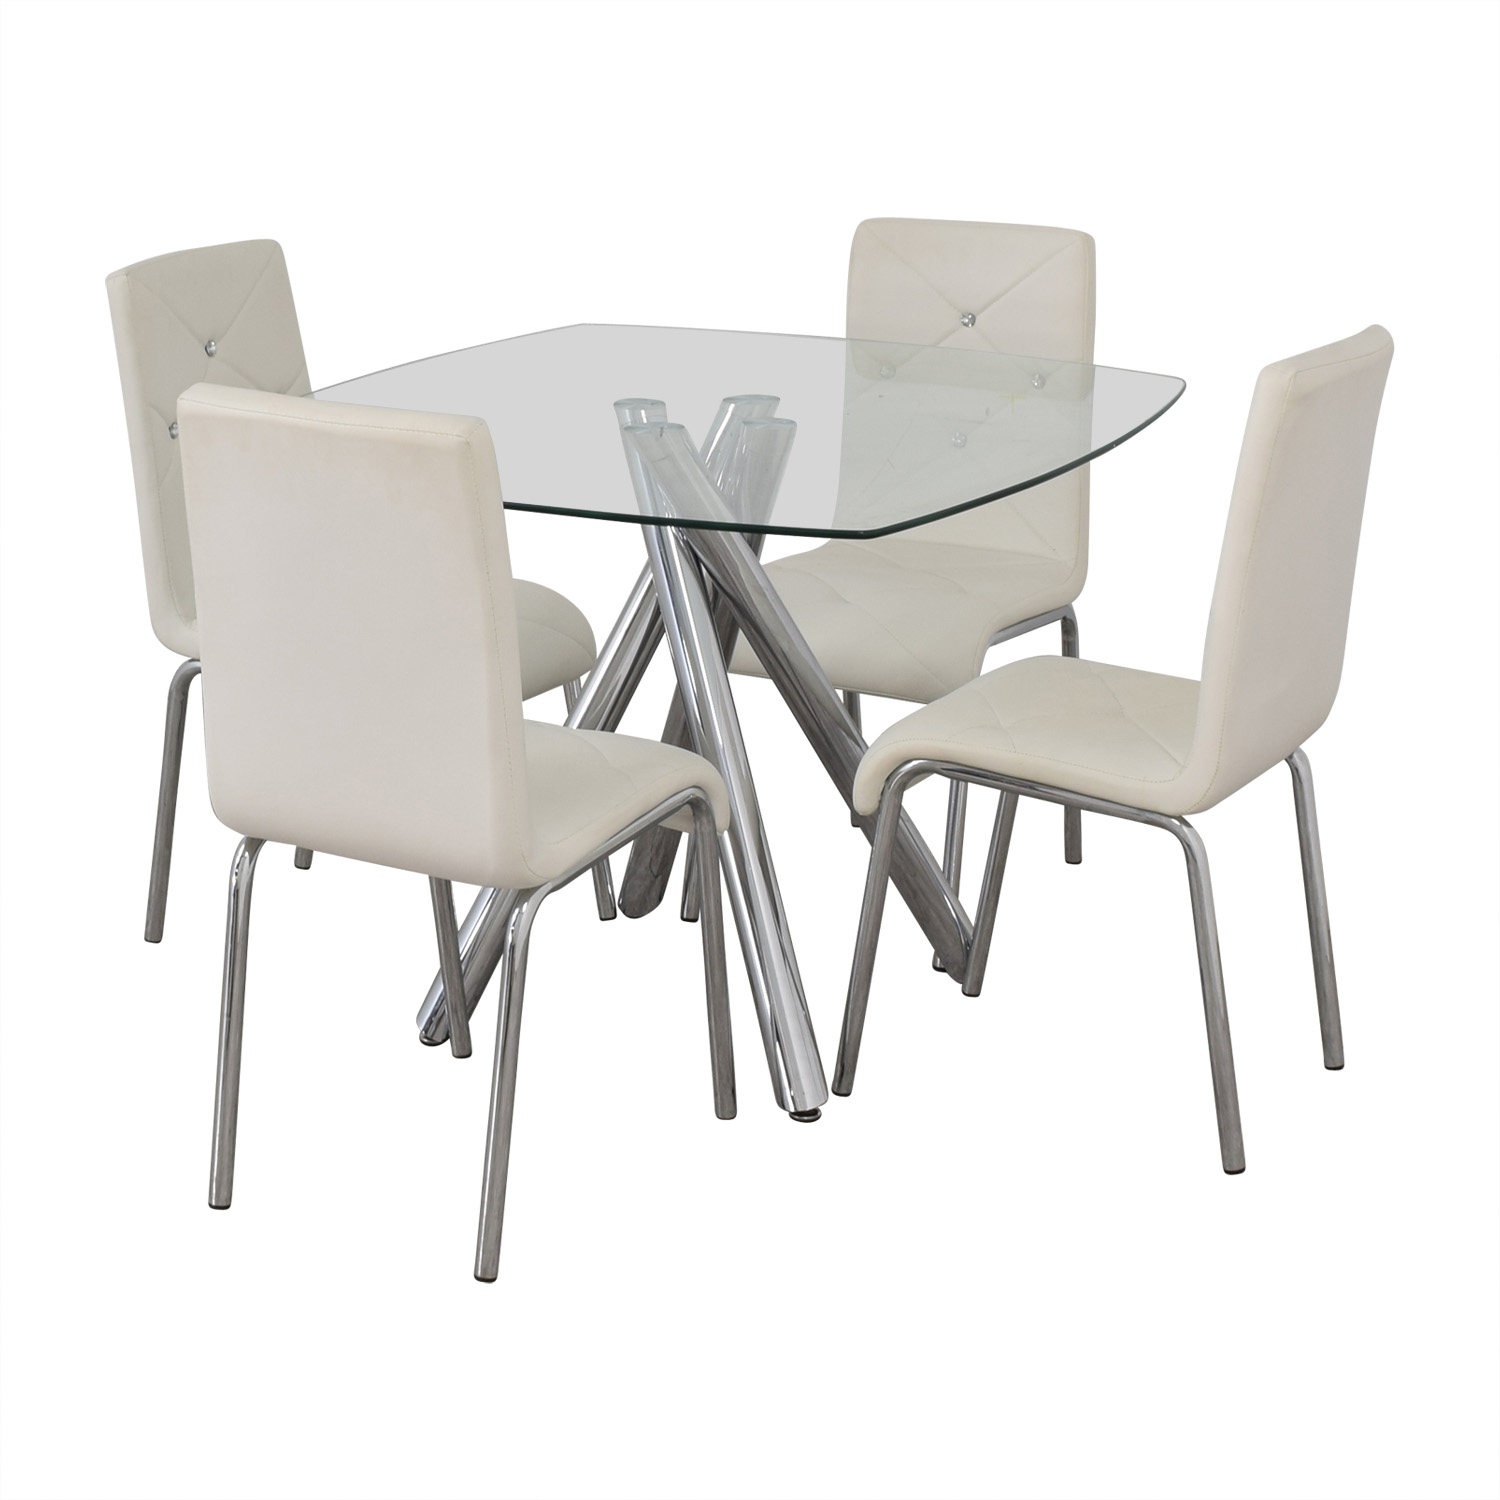 Glass and Chrome Dining Set with White Tufted Chairs WHITE